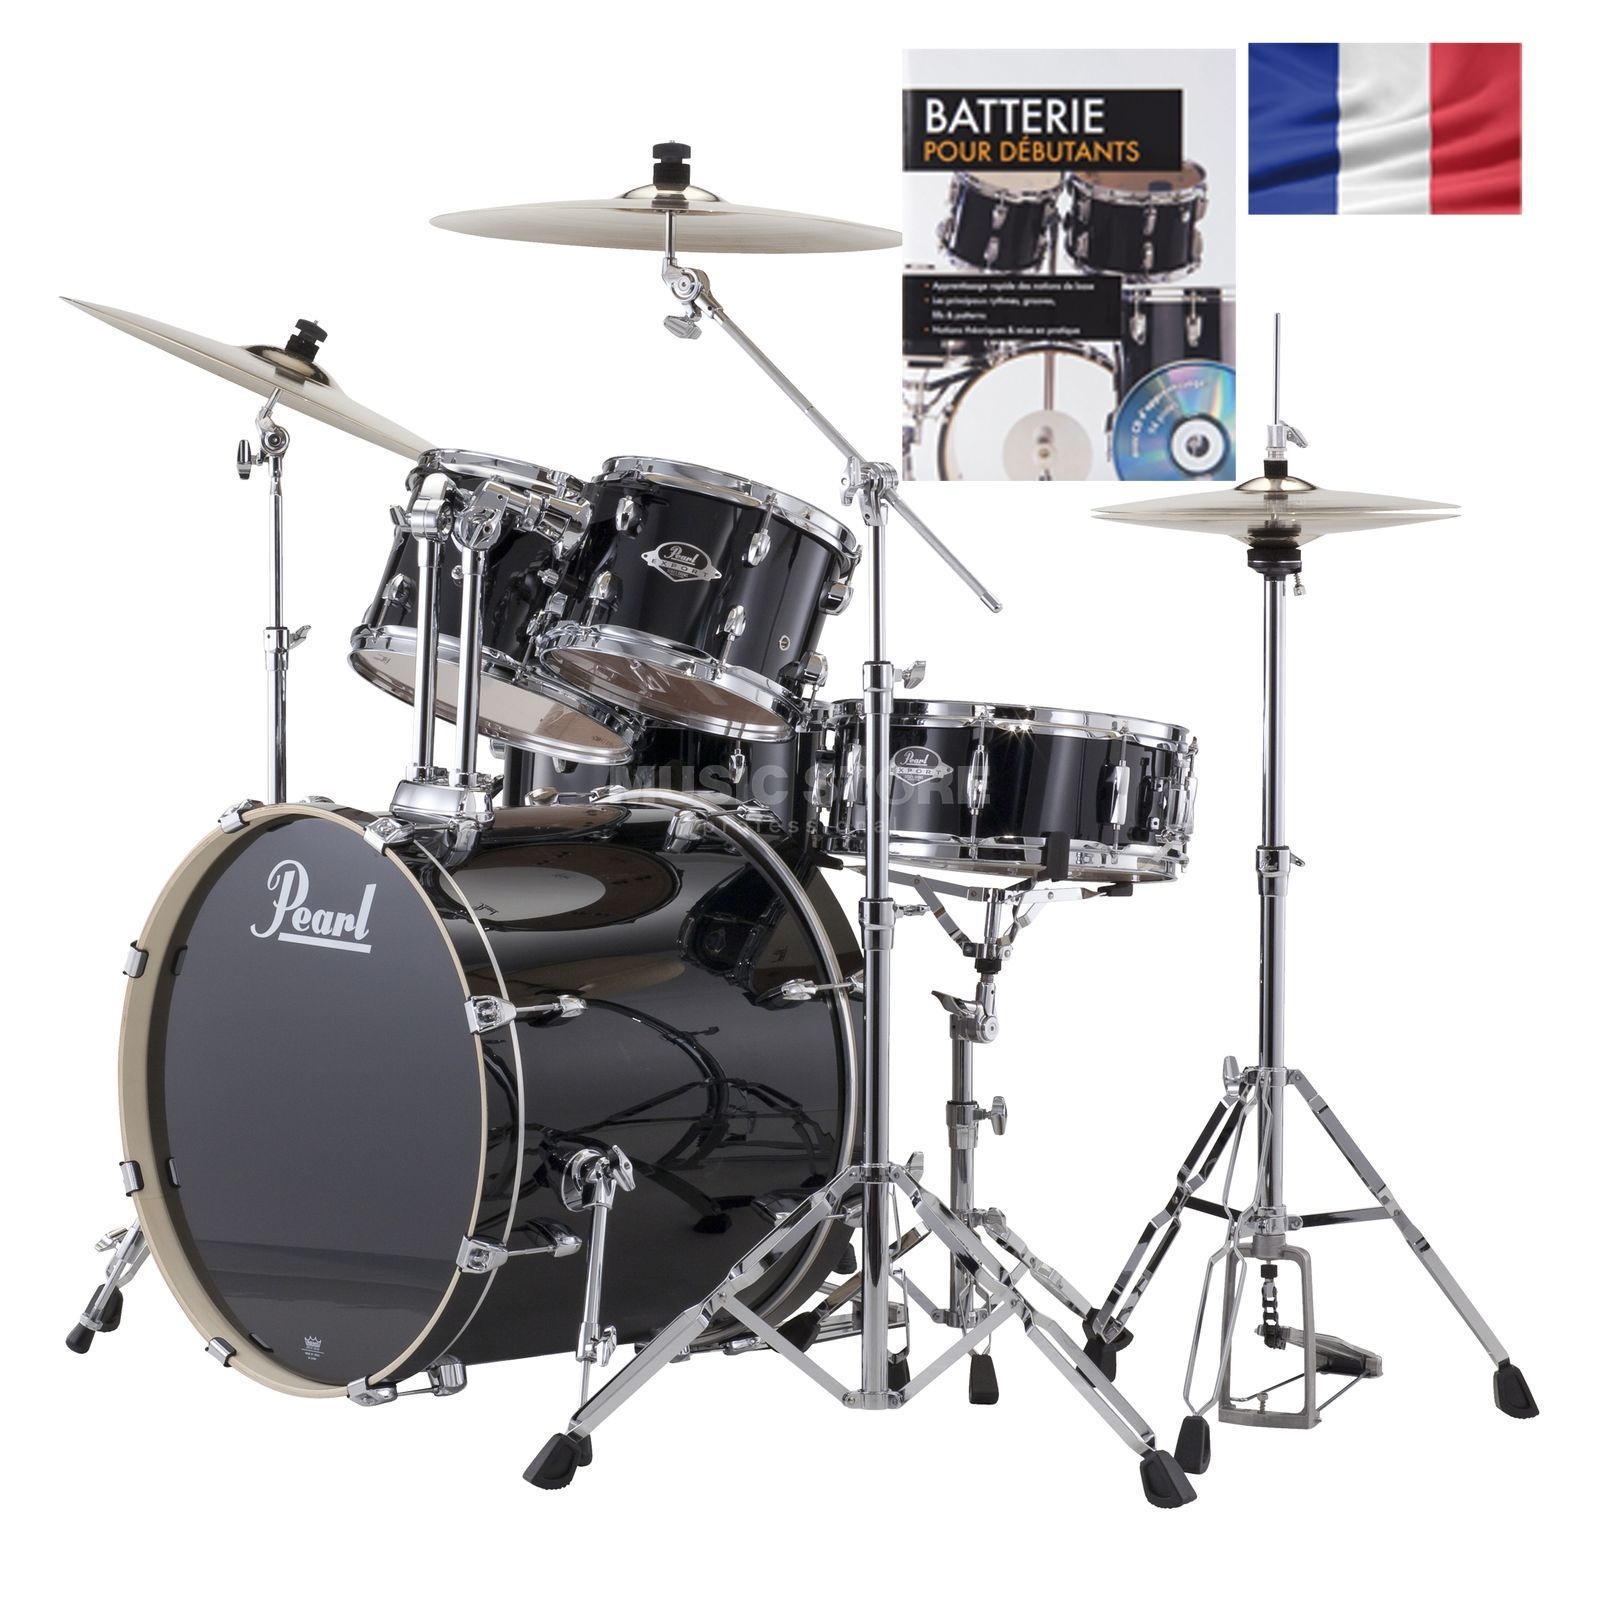 SET PEARL Export Batterie EXX705Z /C, #Jet Black + partitions Produktbild